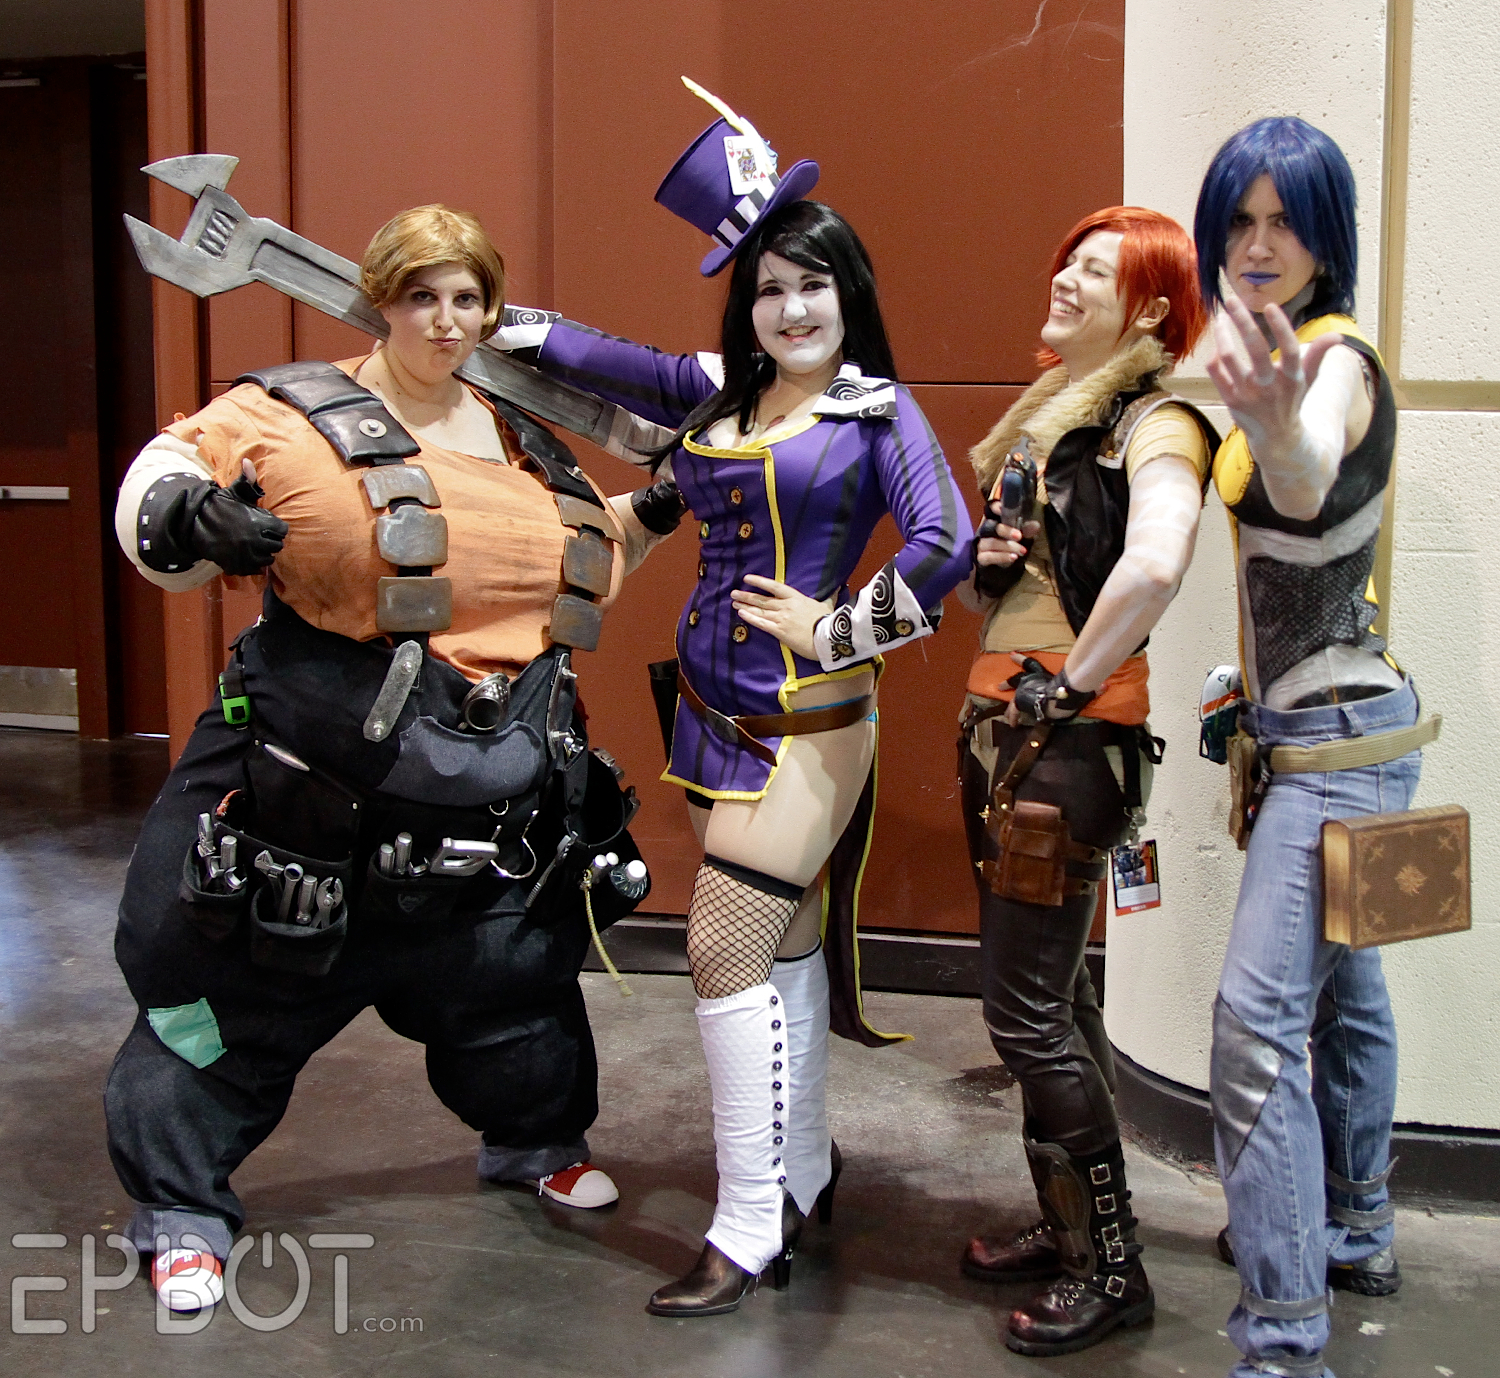 borderlands 2 mother of cosplay gaming